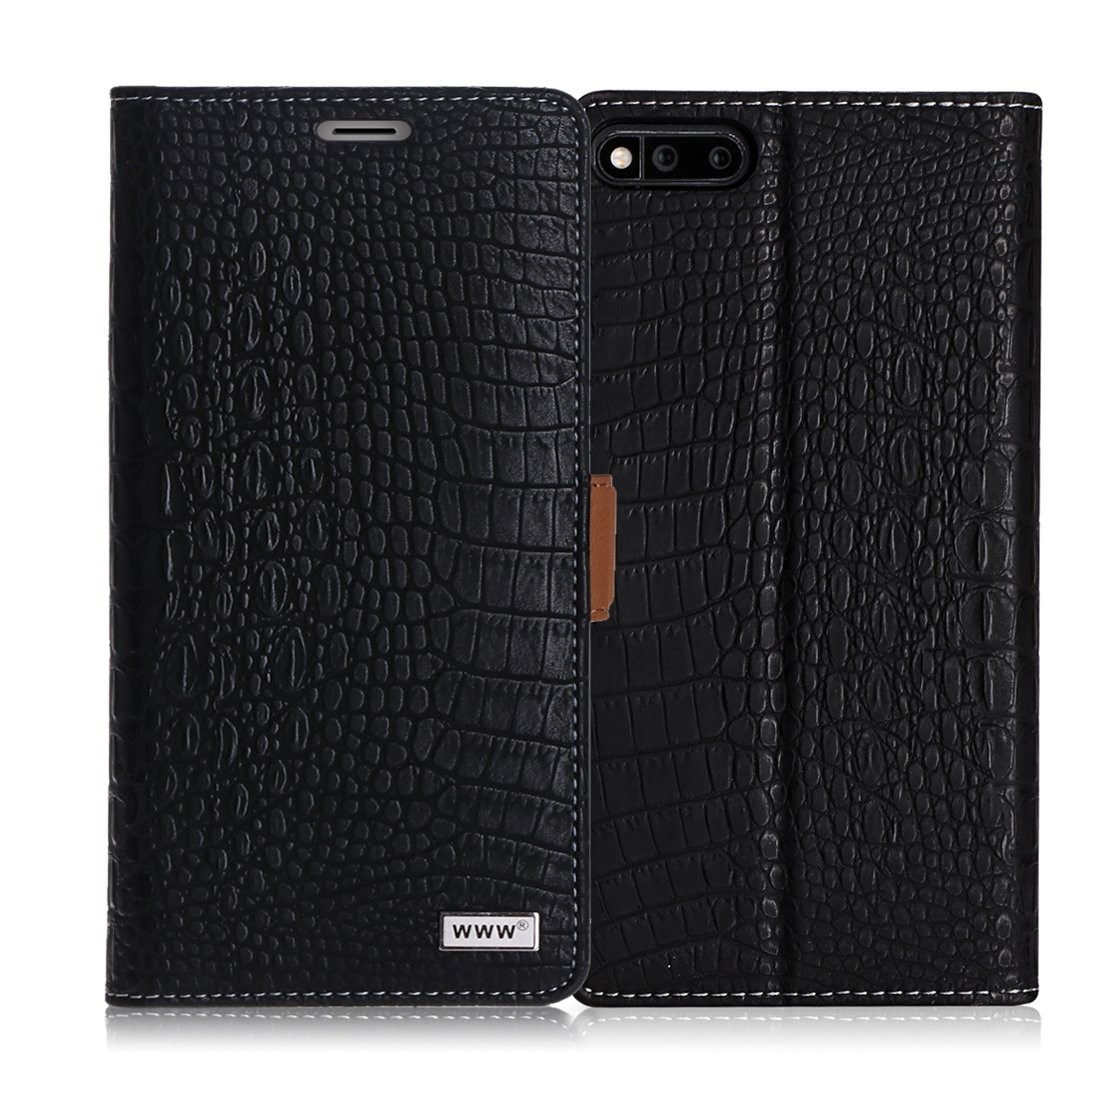 Razer Phone Case, WWW [Crocodile Pattern] Premium PU Leather Wallet Case Flip Phone Case Cover with Card Slots for Razer Gaming SmartPhone (2017 Android Model) Black